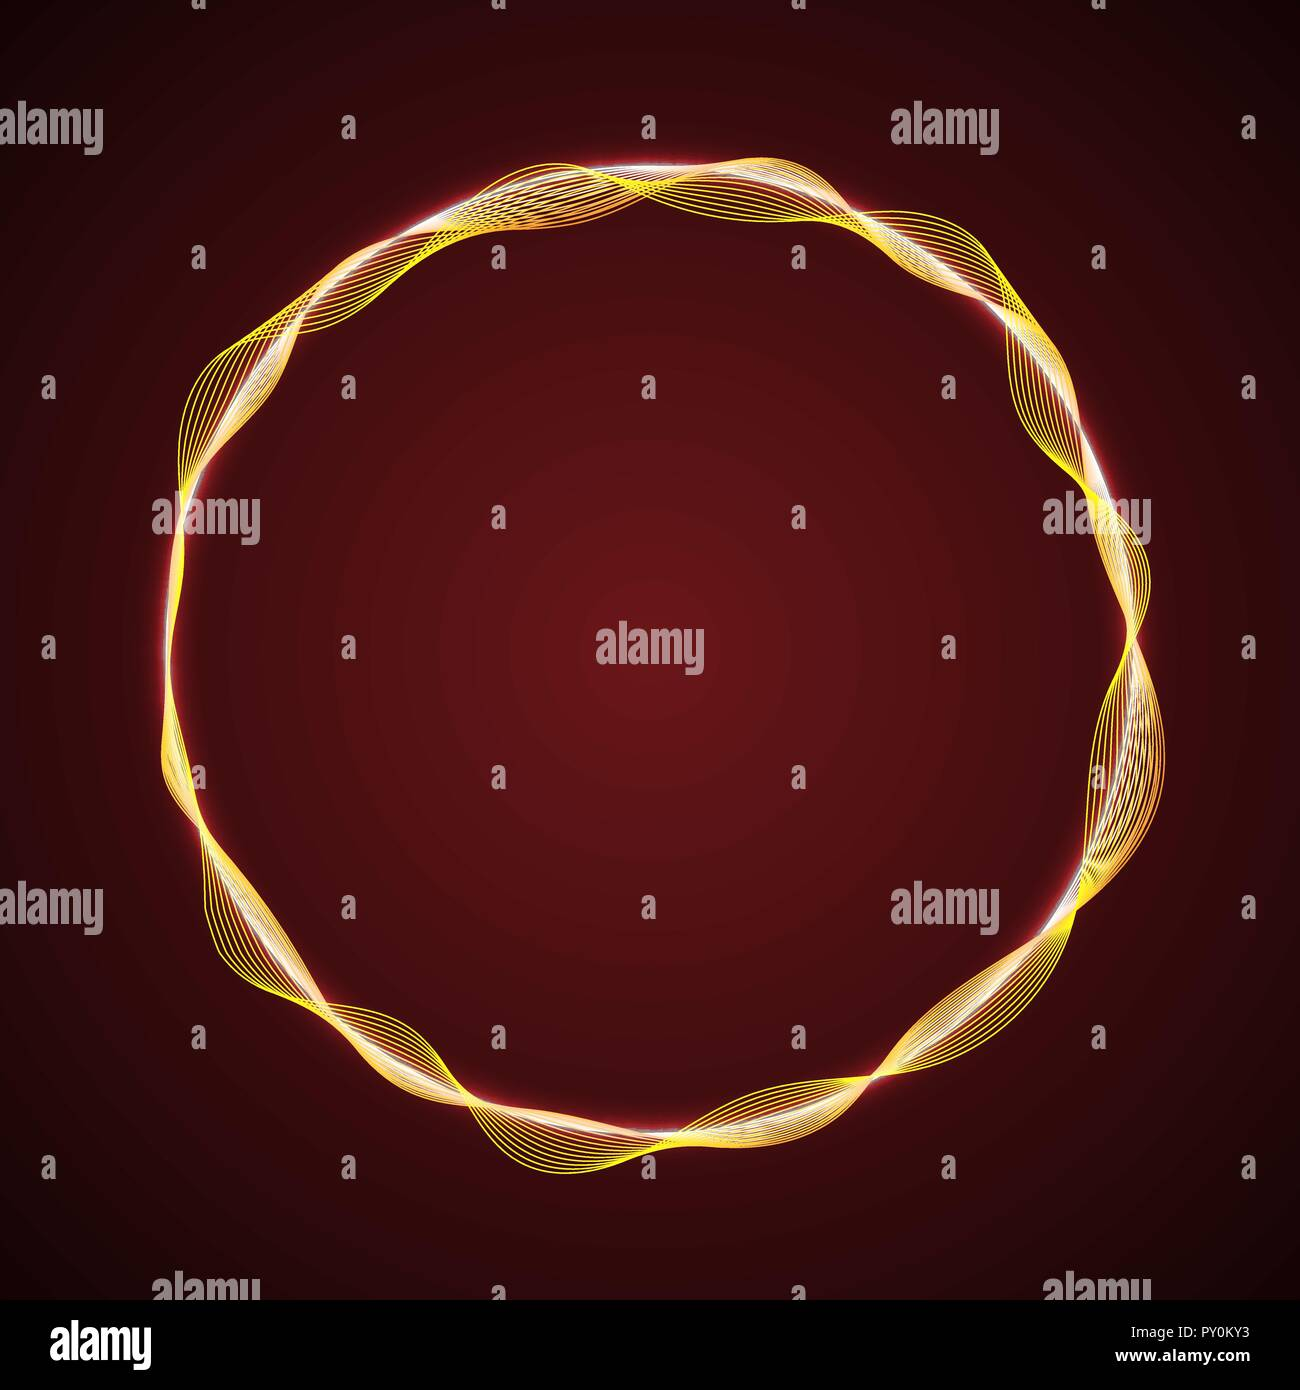 Radio Waves Diagram Stock Photos Images Radiowavesdiagram Neon Glowing Circular Shape Of Template For Your Design Image